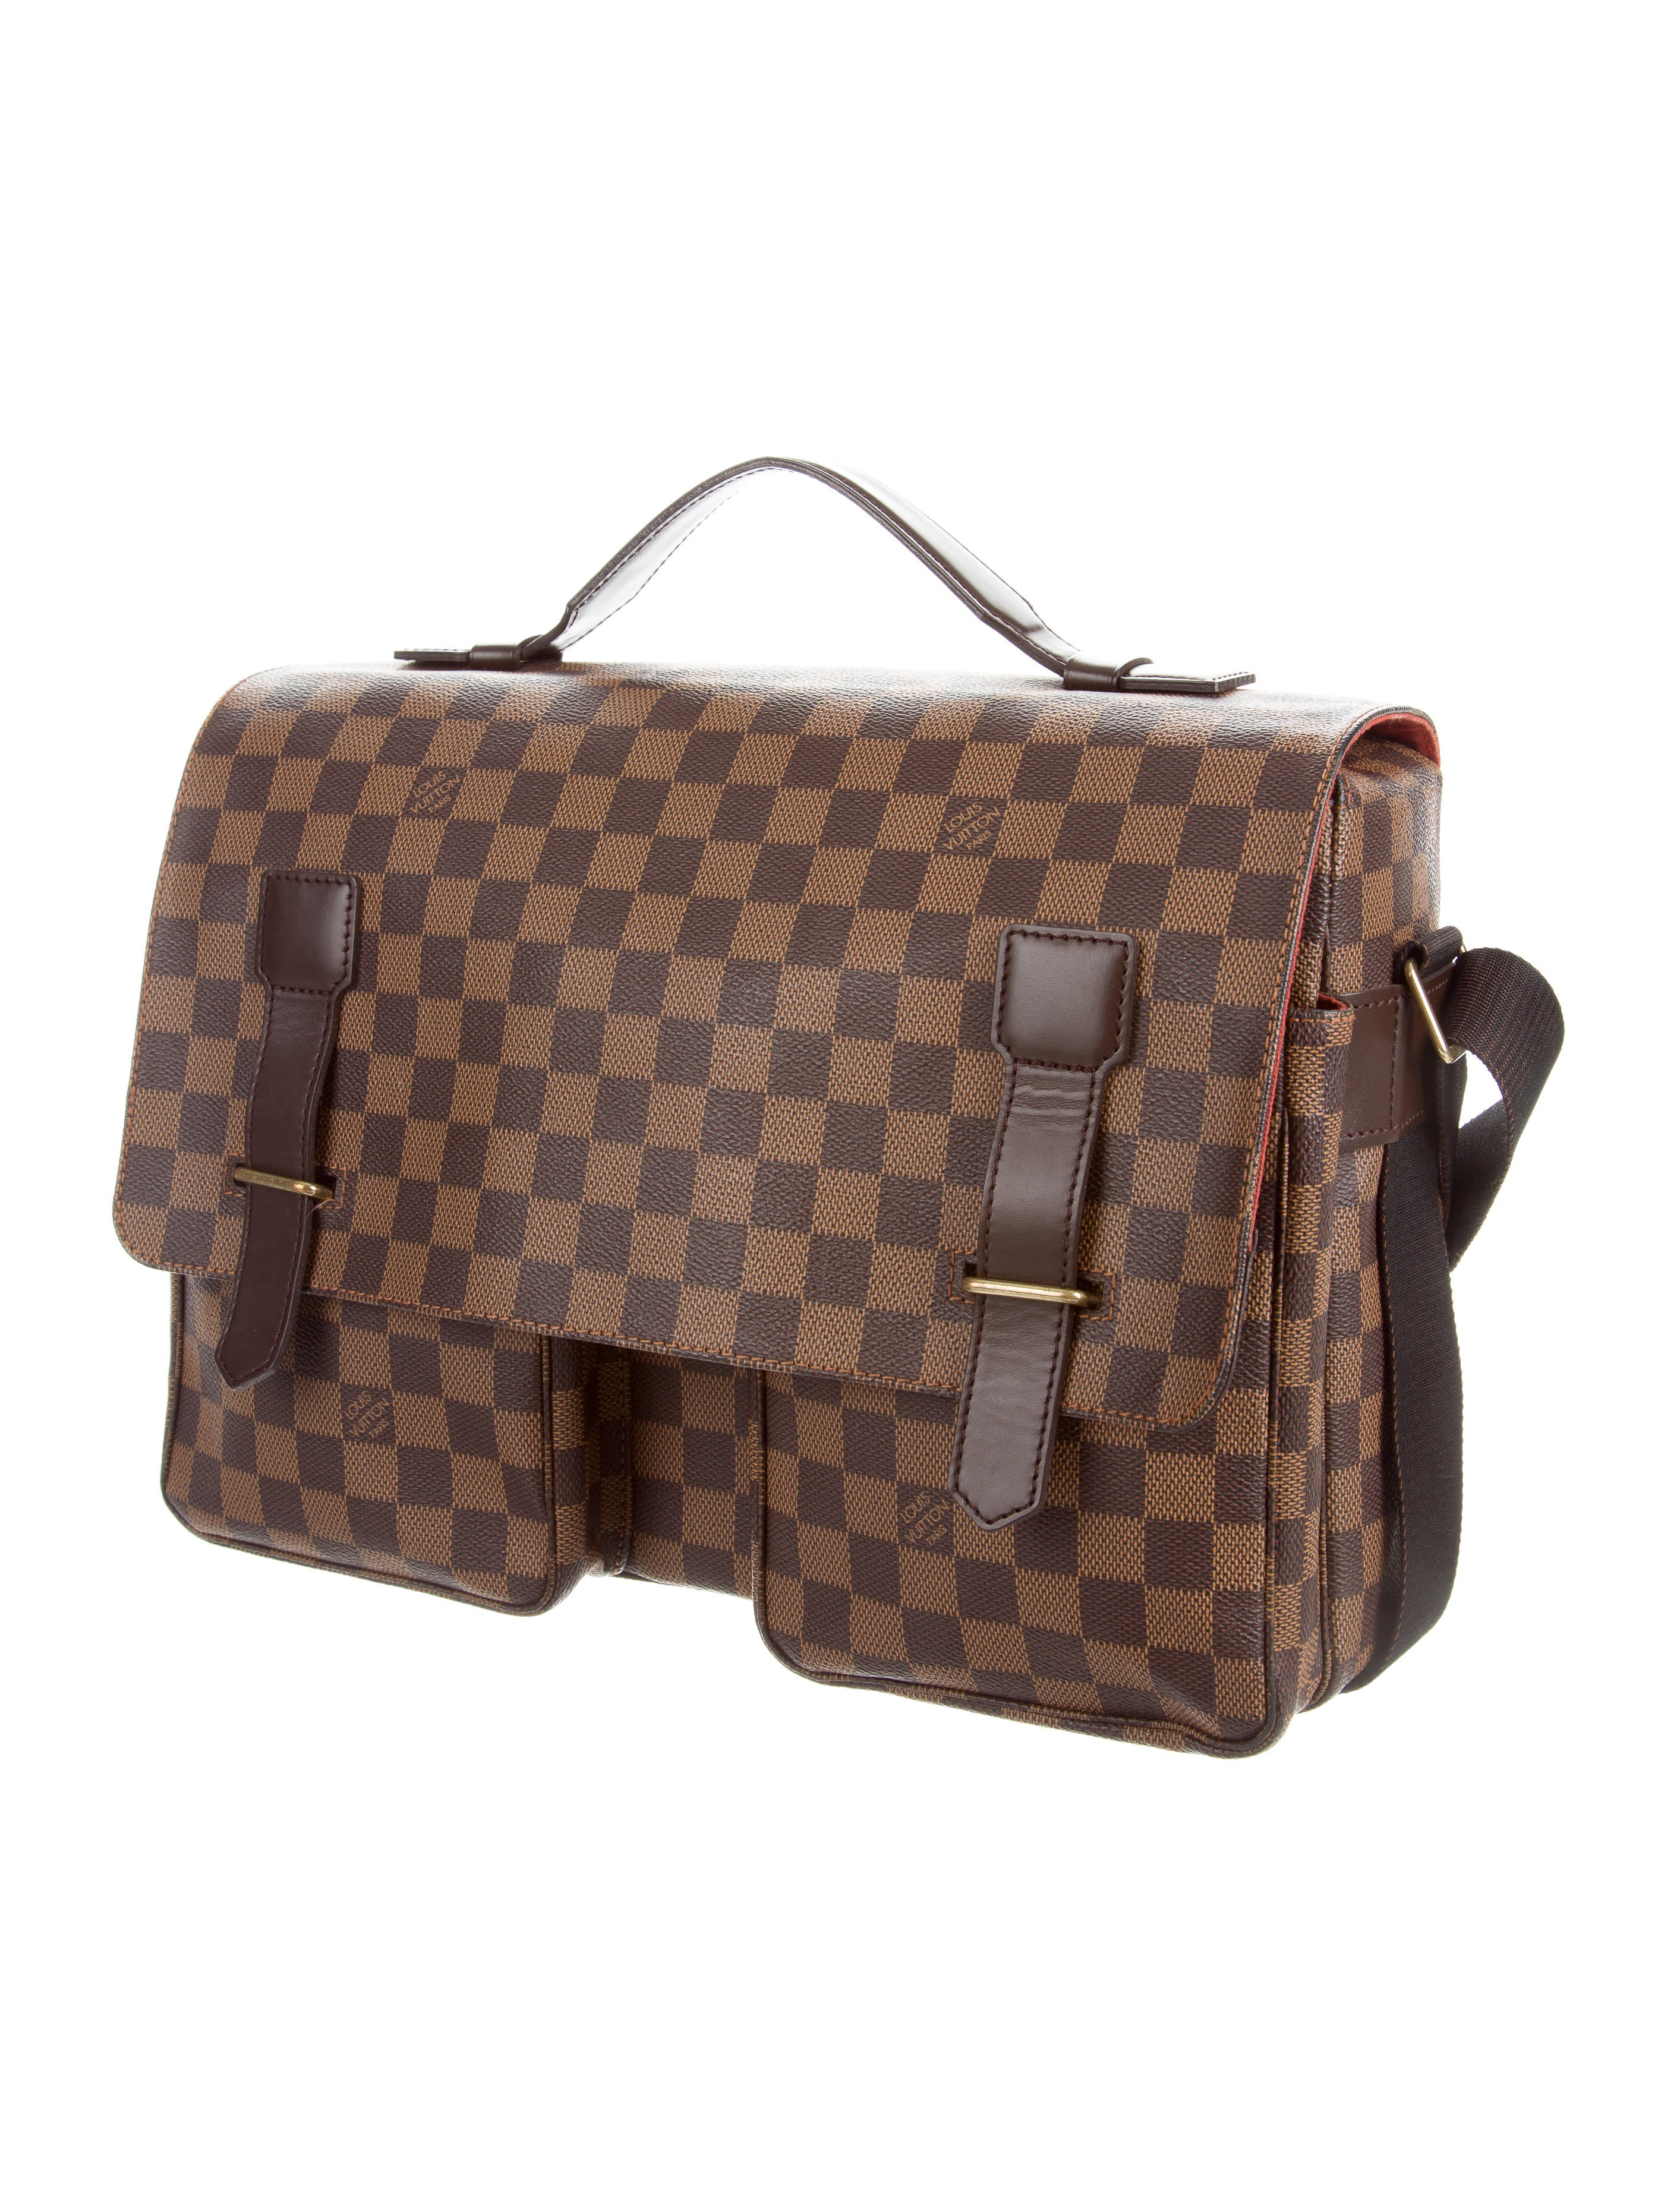 Simple Louis Vuitton Messenger Bag In Brown | Lyst